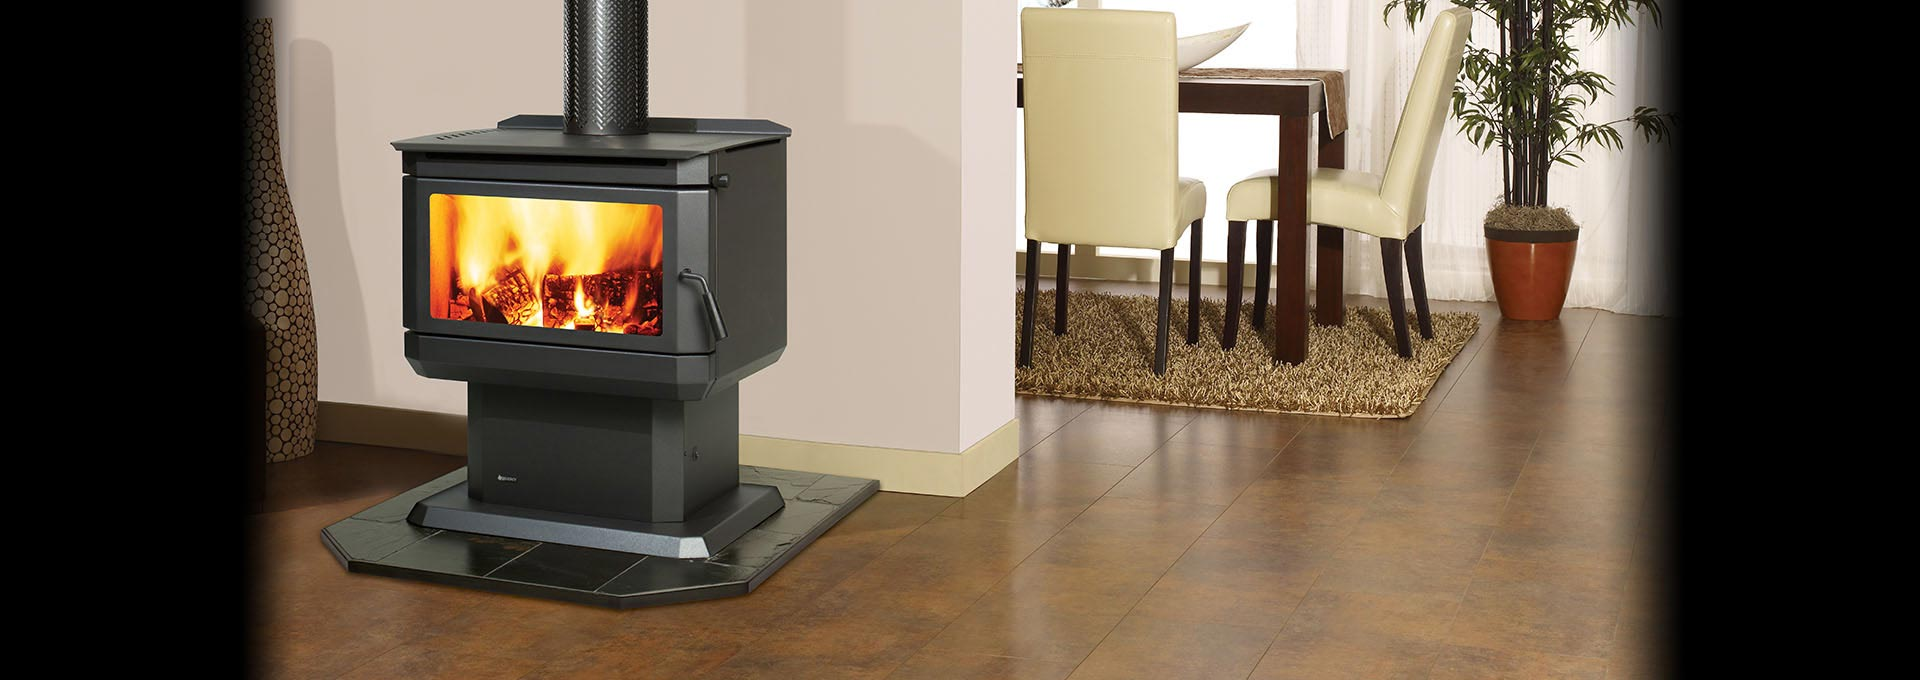 High Efficiency Wood Heater - Regency Gosford